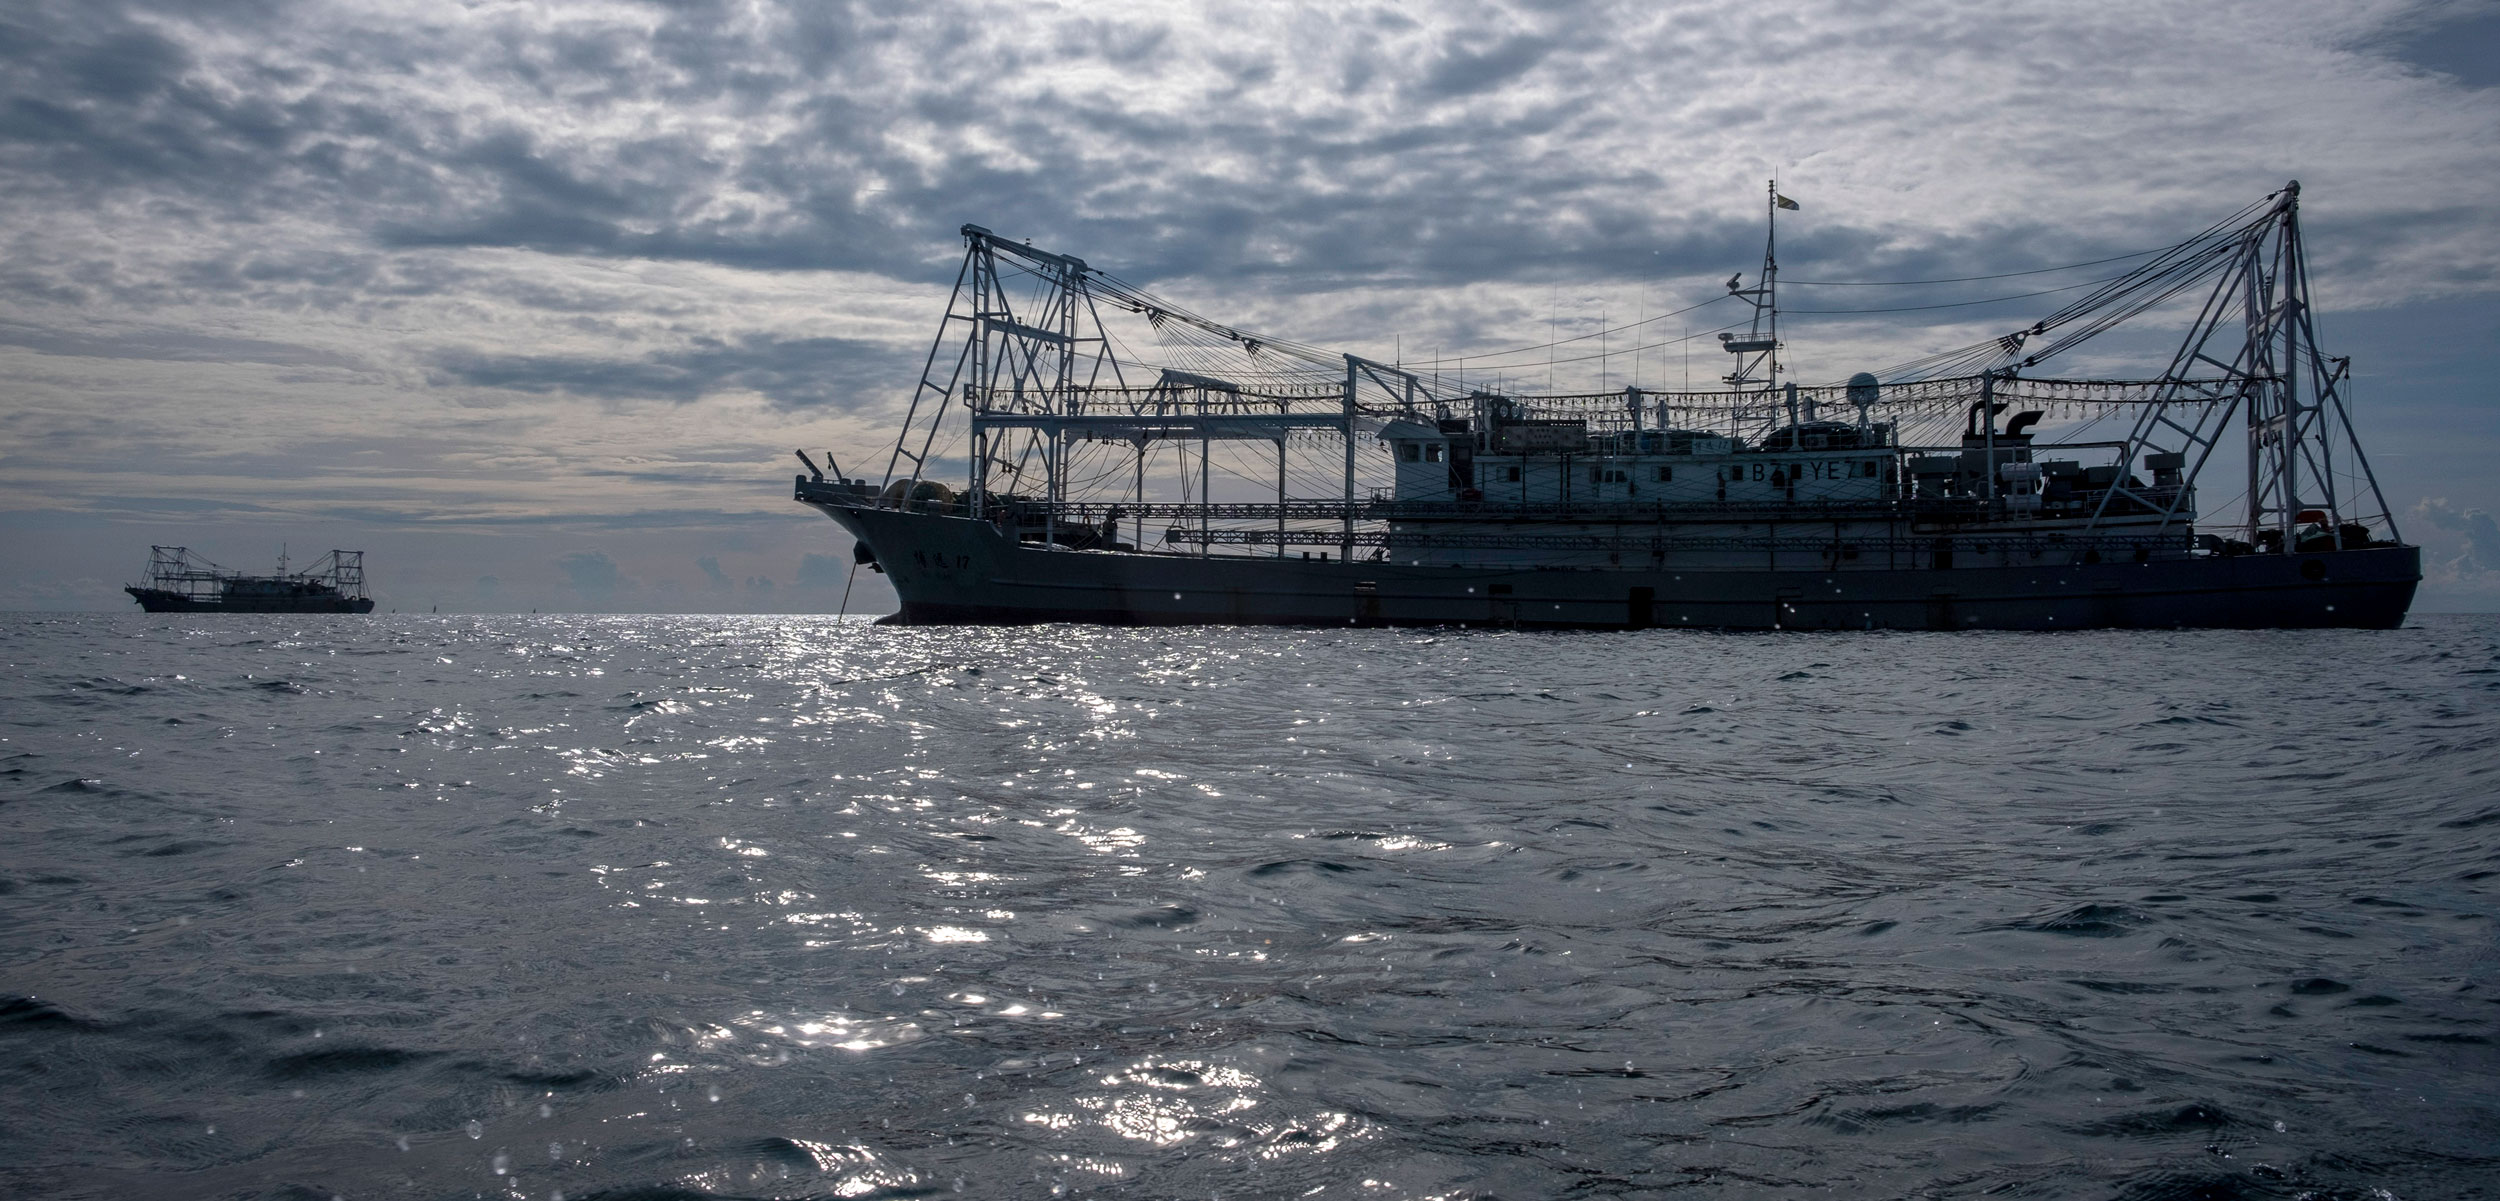 A large Chinese fishing vessel floats off the coast of Tanzania